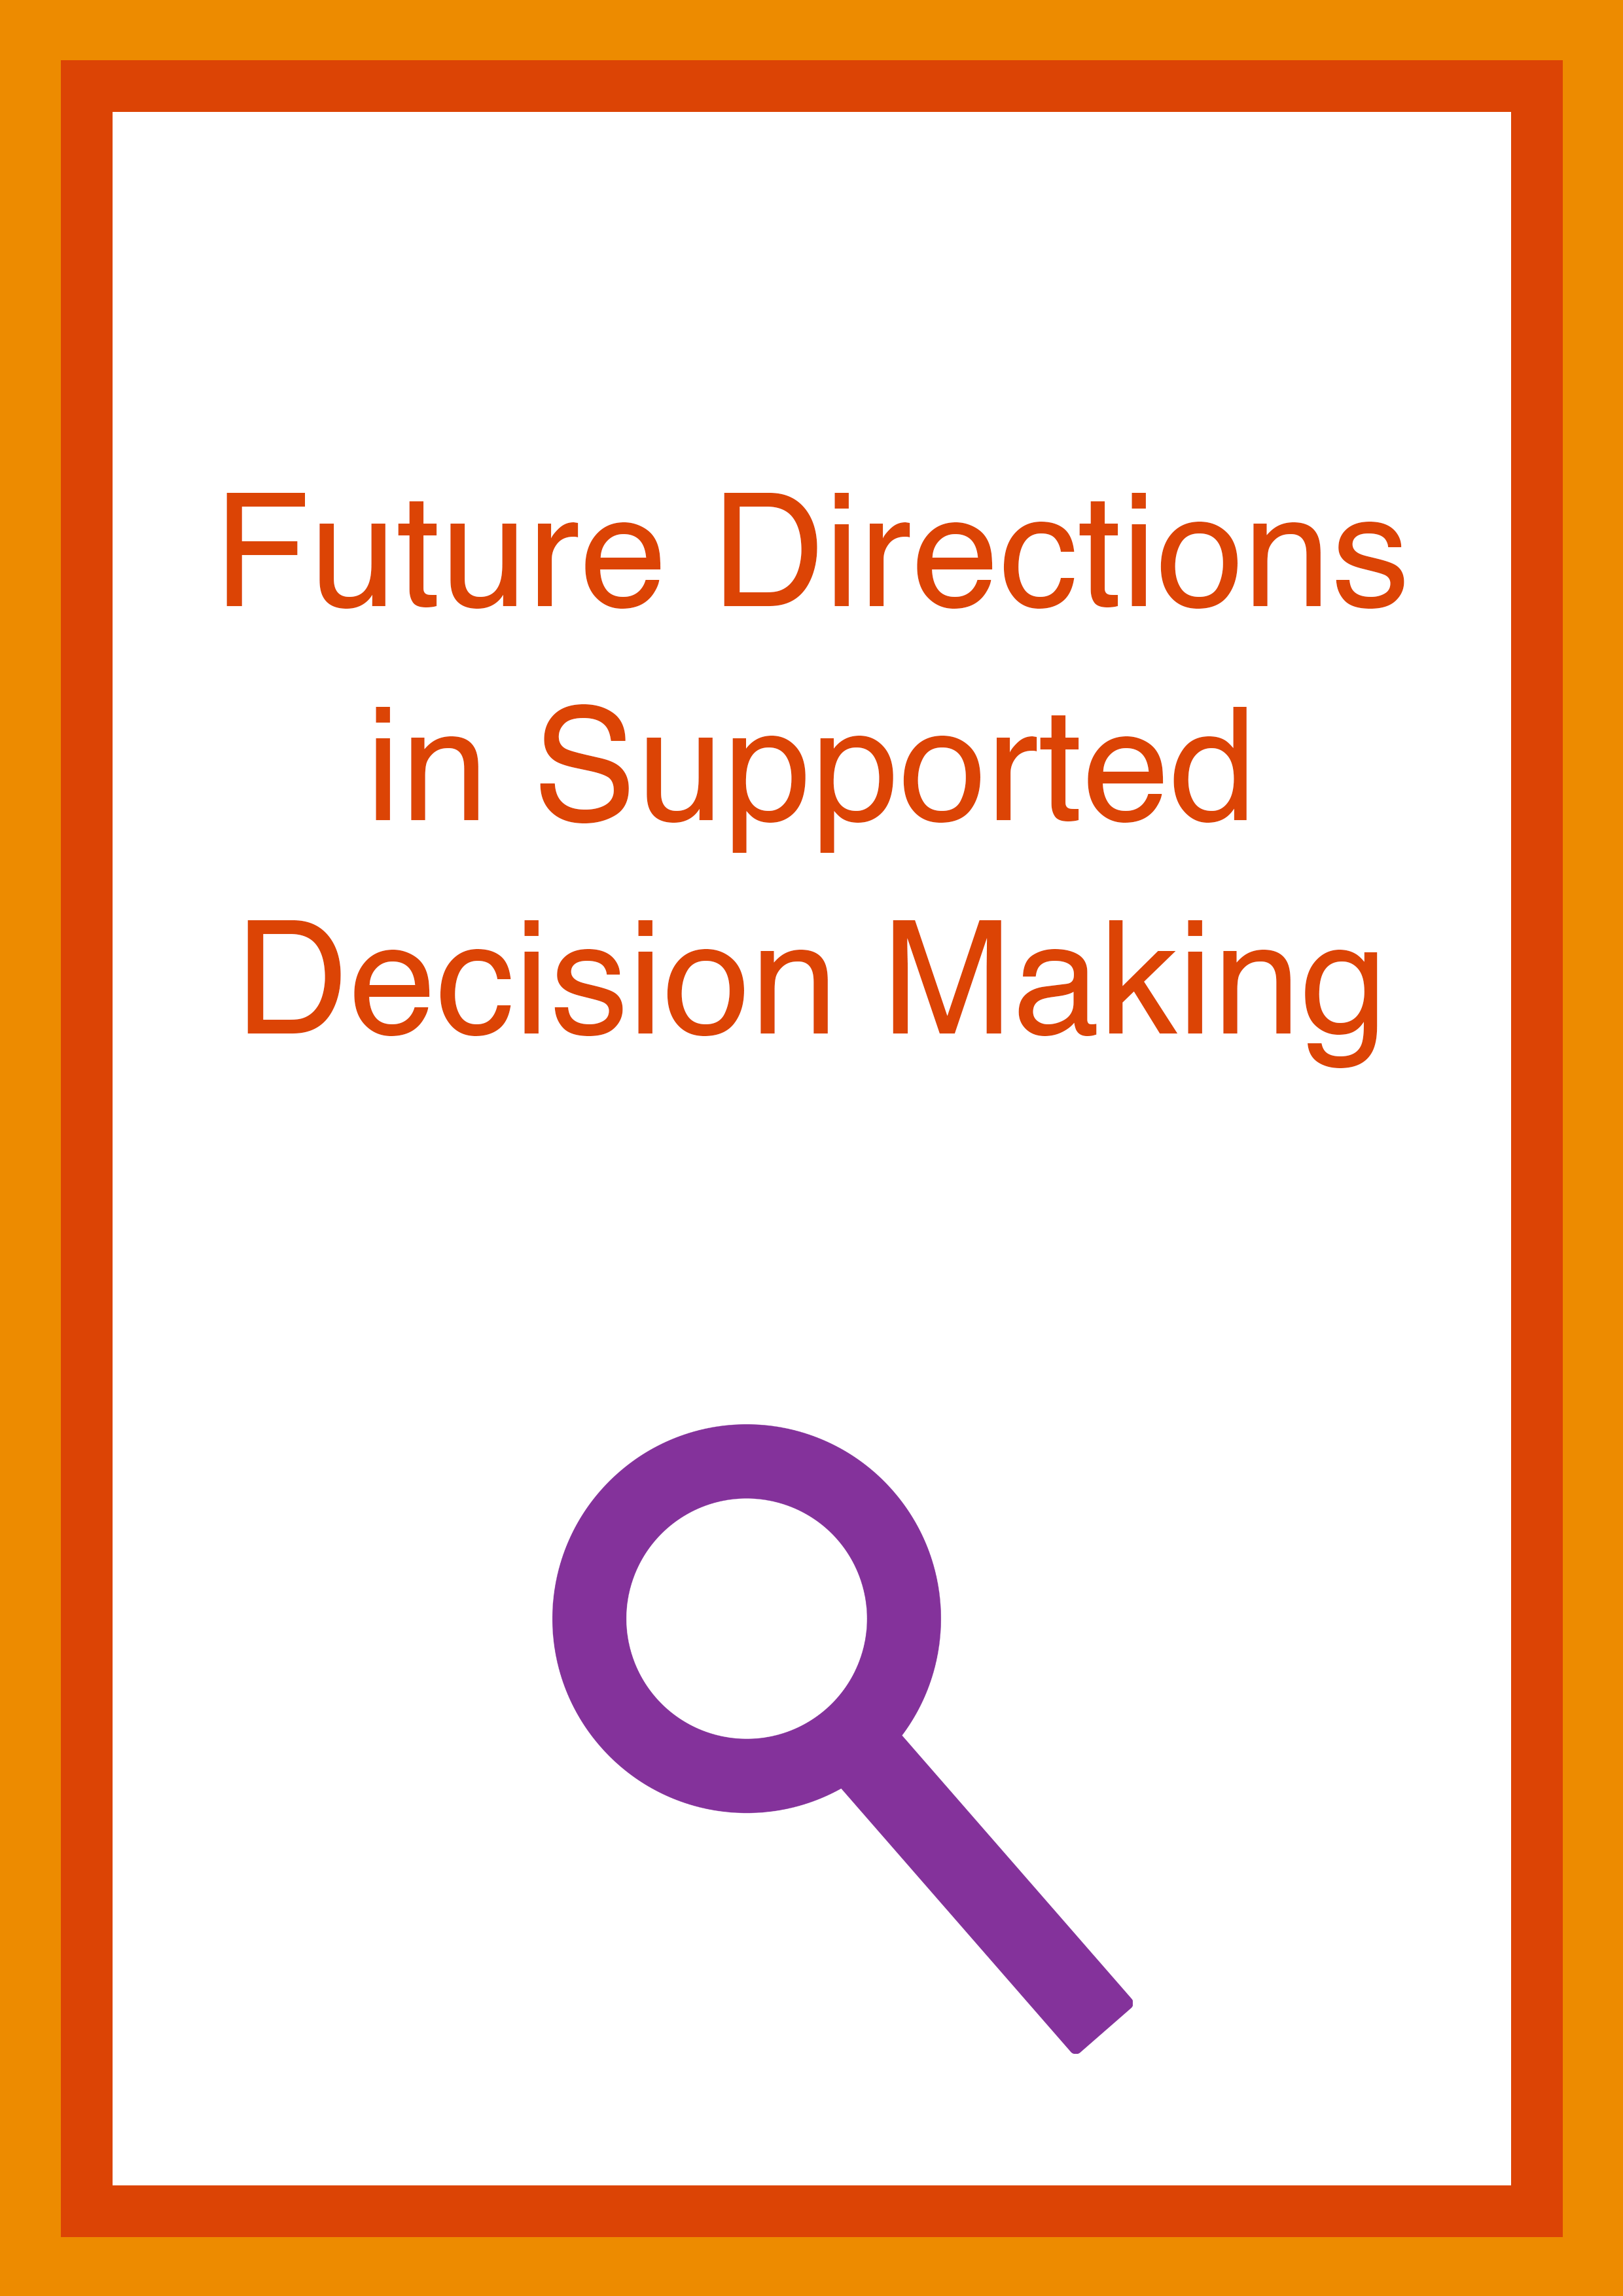 Cover art for: Future Directions in Supported Decision-Making